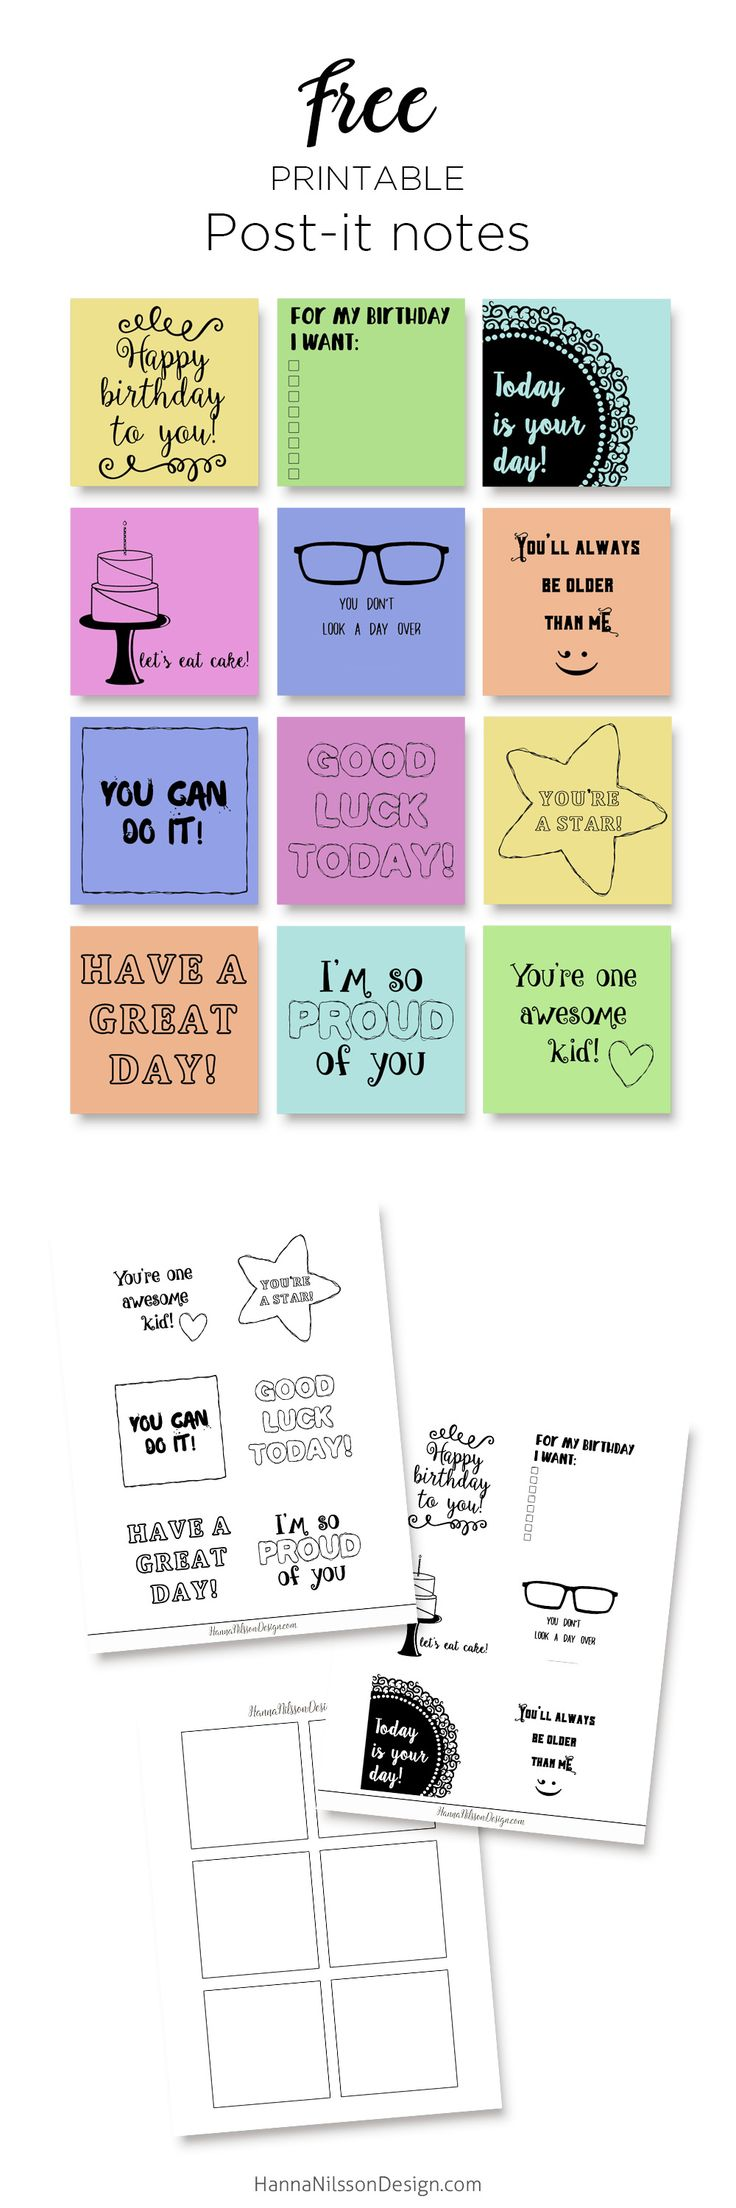 Free Printable Post-it Notes with Printing Guide from Hanna Nilsson Design {newsletter subscription required}